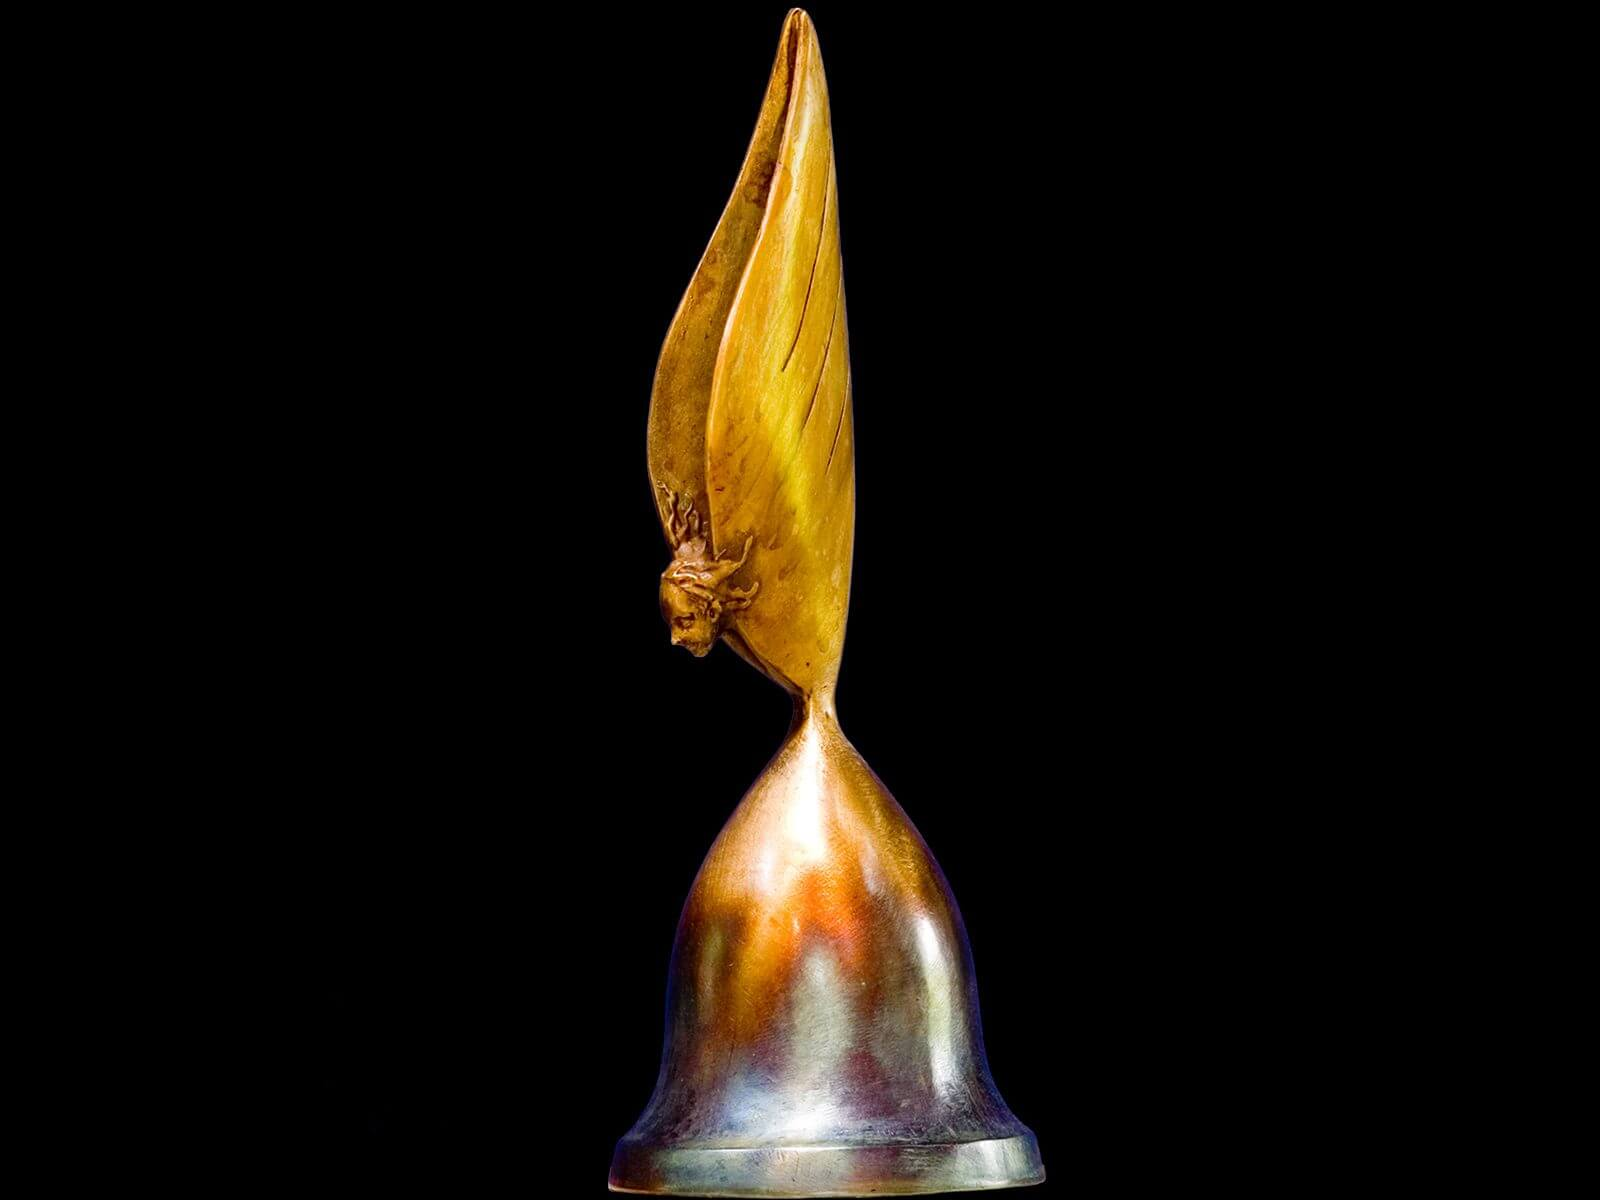 Song of an Angel bell a small figurative sculpture by Andrew DeVries